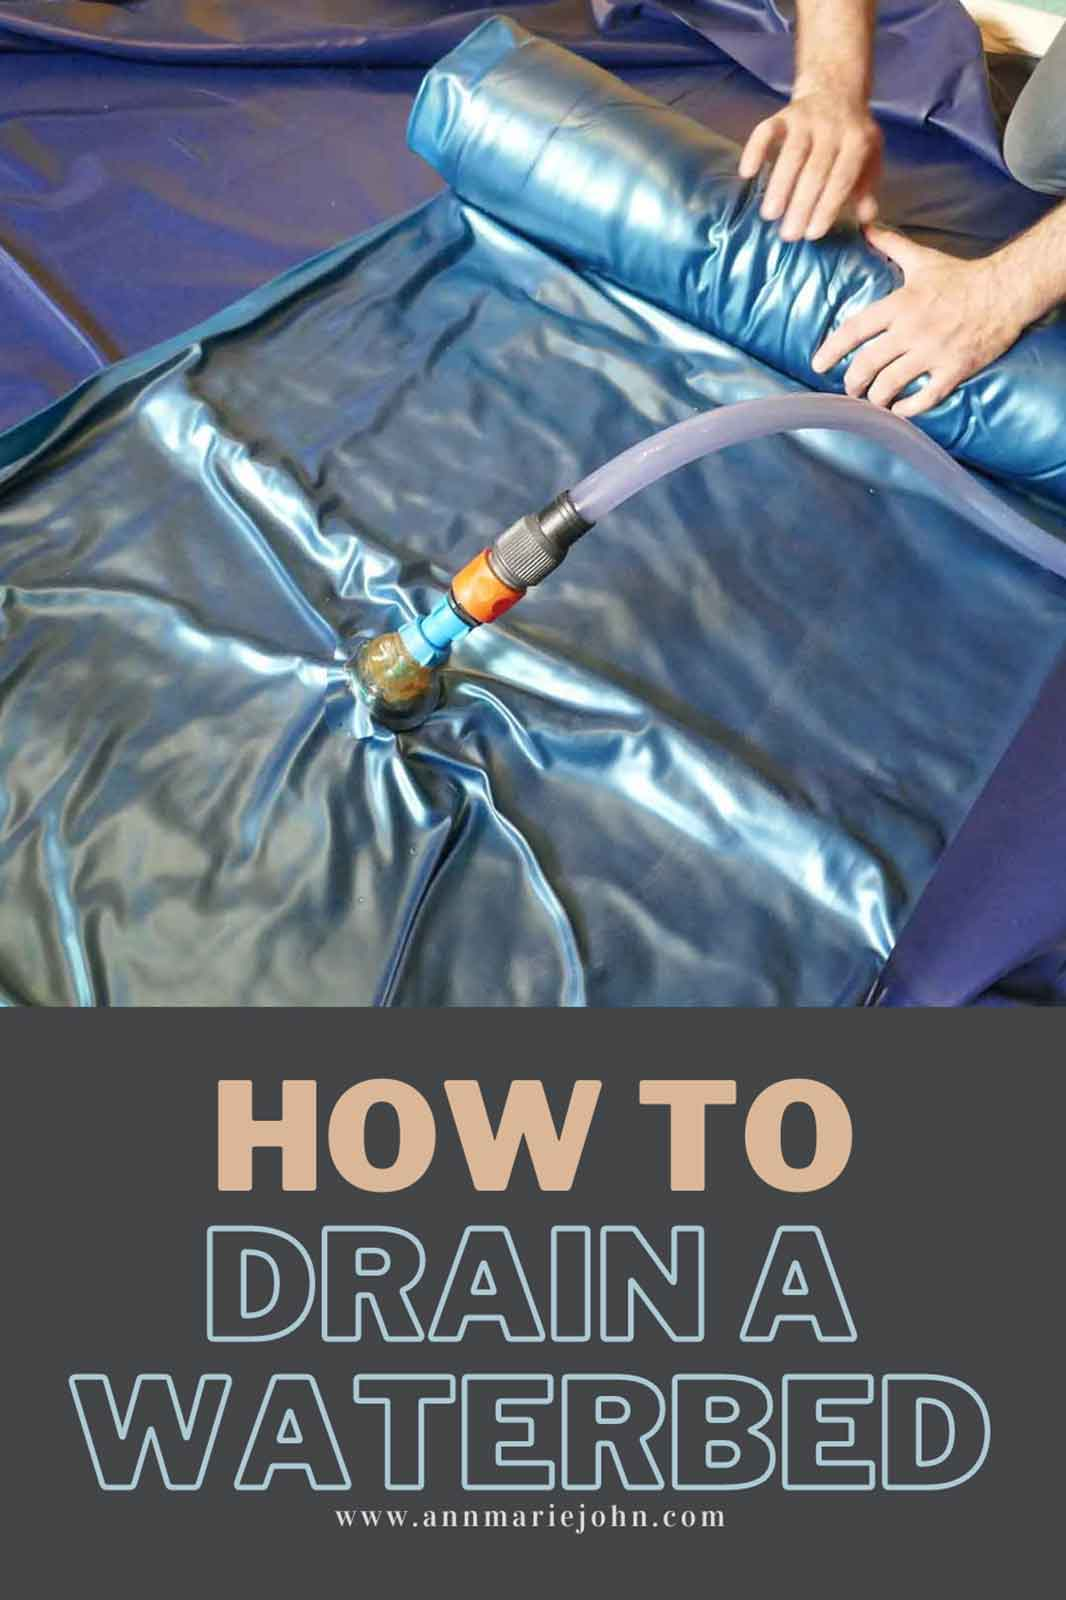 How to Drain a Waterbed – A Guide for Owners